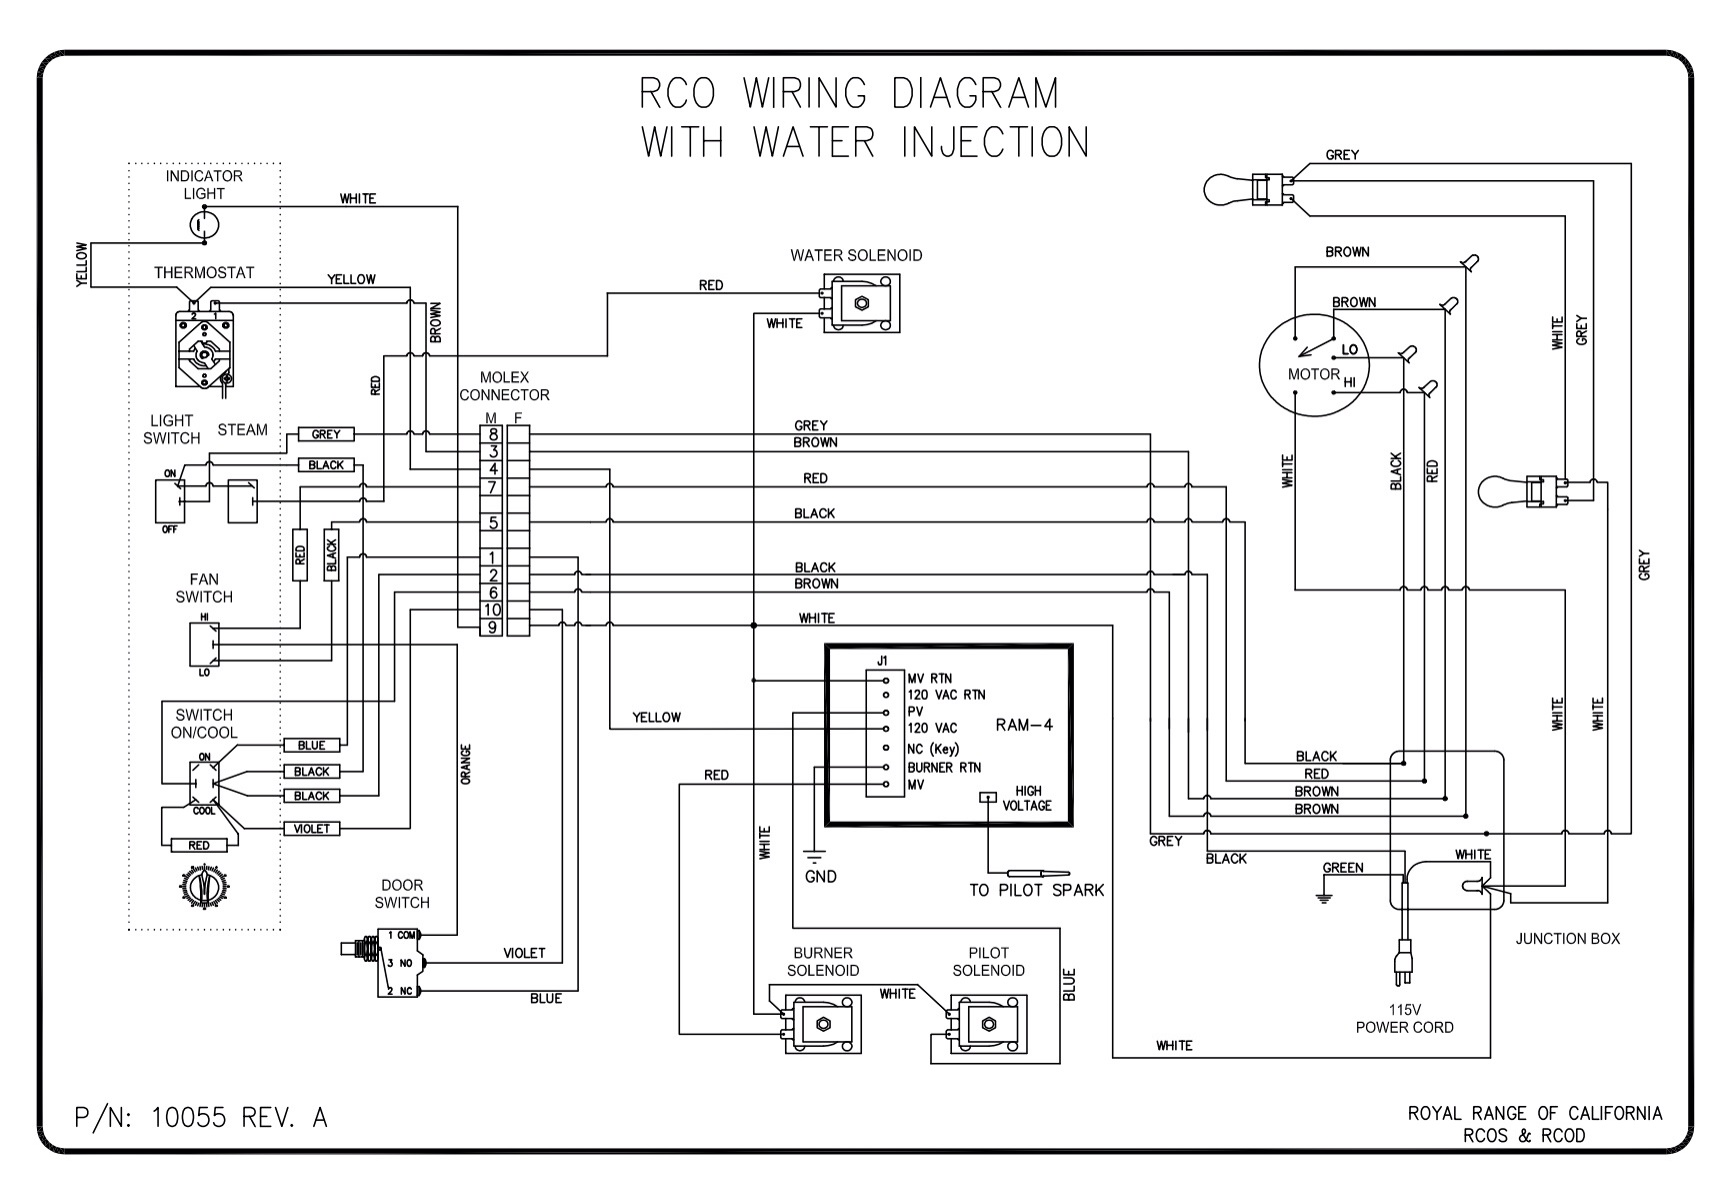 Wrg 7045 115v Switch Electrical Wiring Diagrams